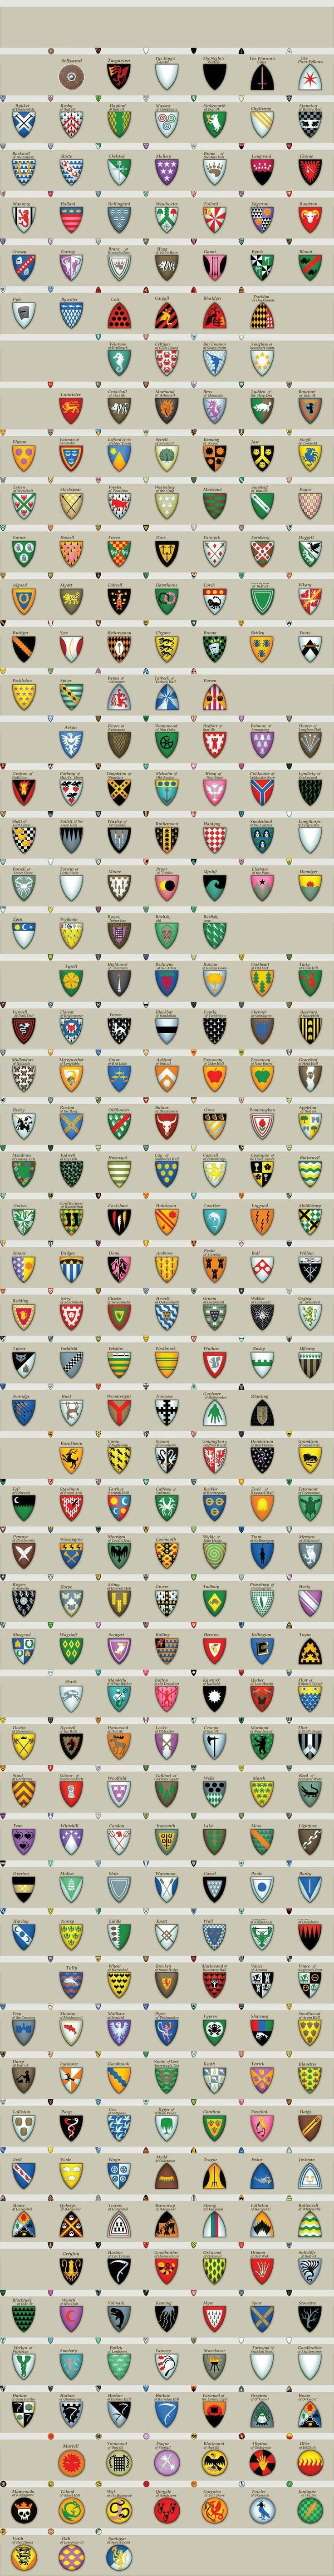 The Sigils / Banners of ASOIAF  #got #agot #asoiaf